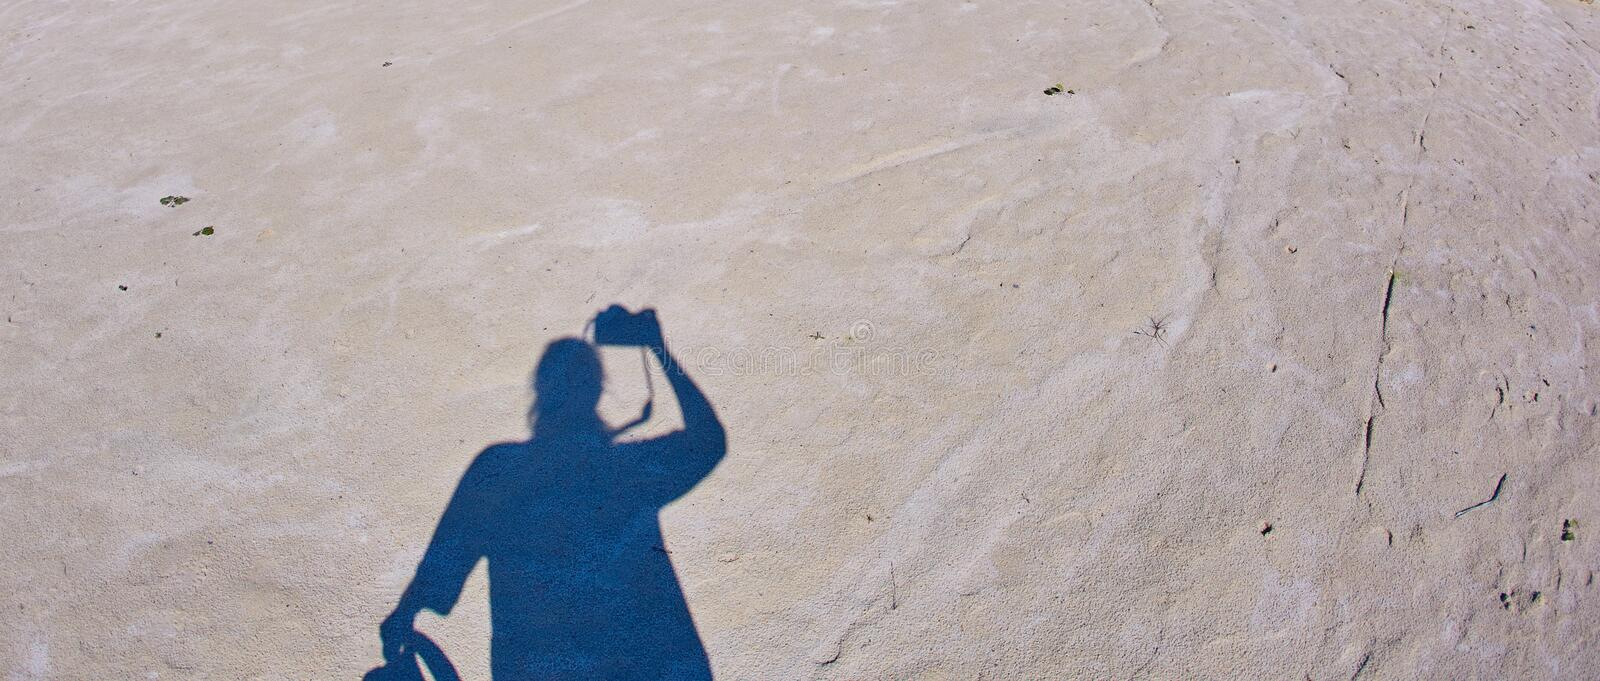 A self-portrait of a photographer with a camera in his hands casts a shadow on the sandy ground with a silhouette.  royalty free stock photography